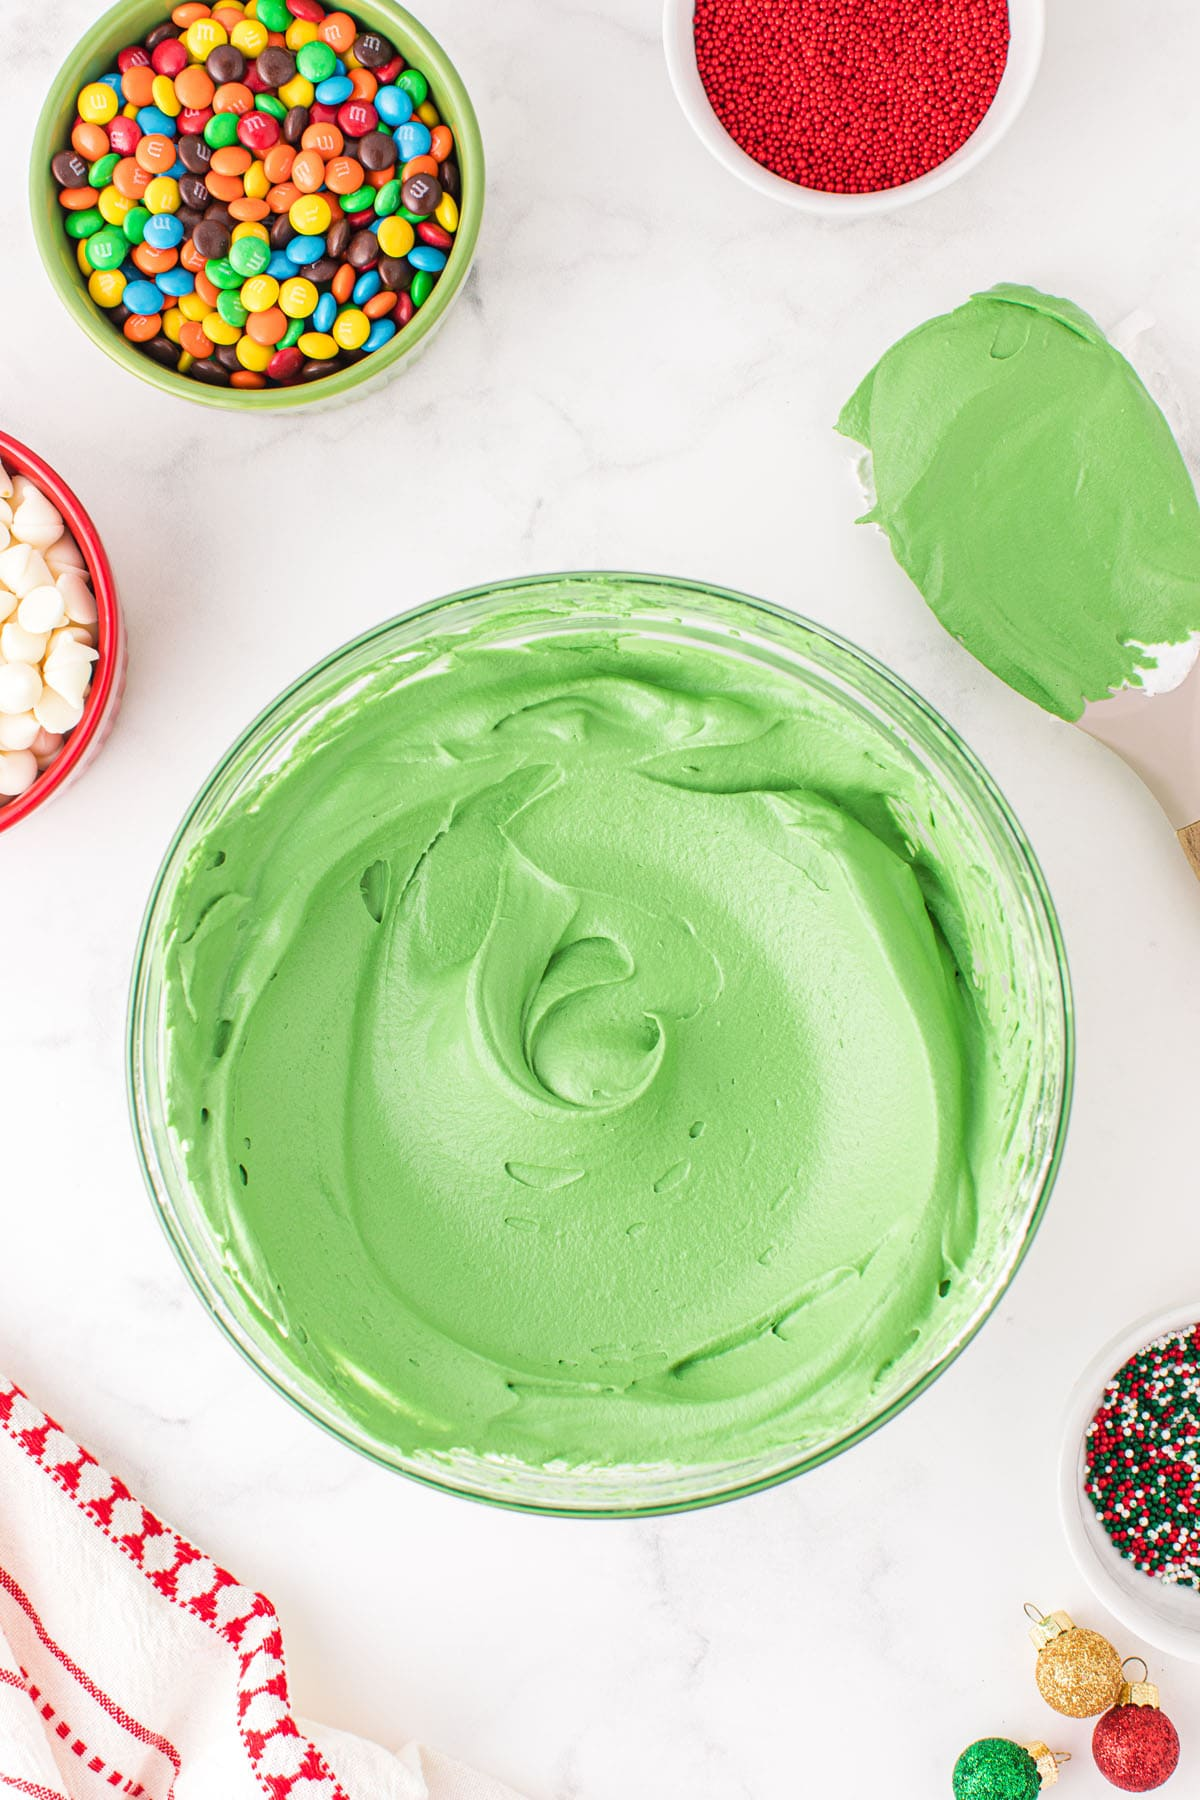 combine green food coloring with the whipped topping